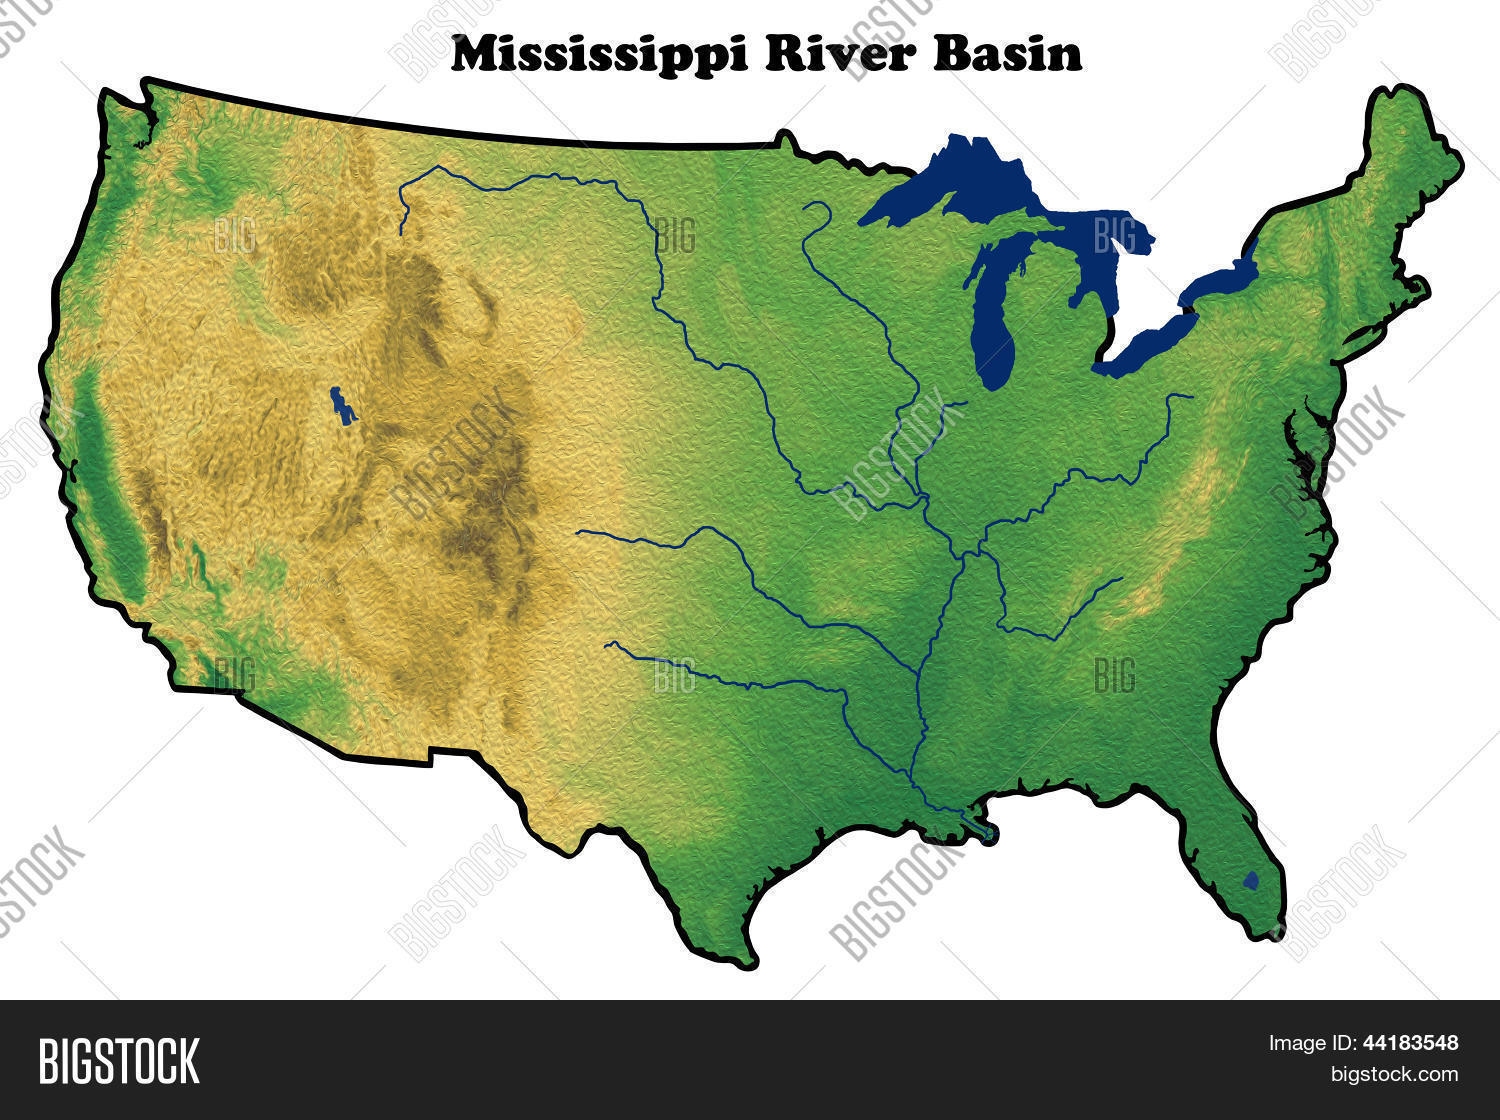 Physical Map United States Showing Image Photo Bigstock - Us map mississippi river